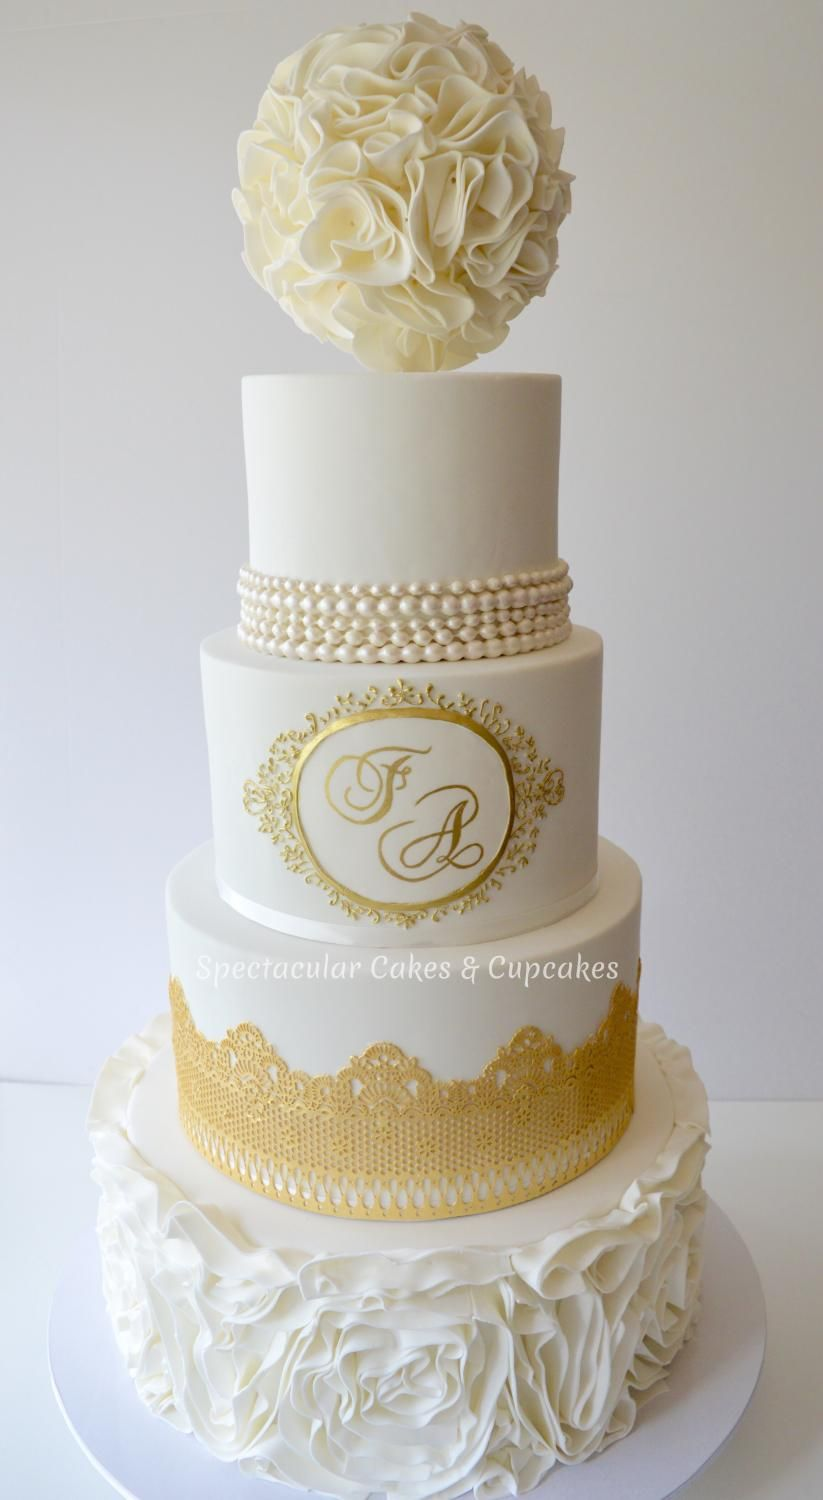 Gold Wedding cake Sydney | Wedding & Engagement Cakes Sydney ...